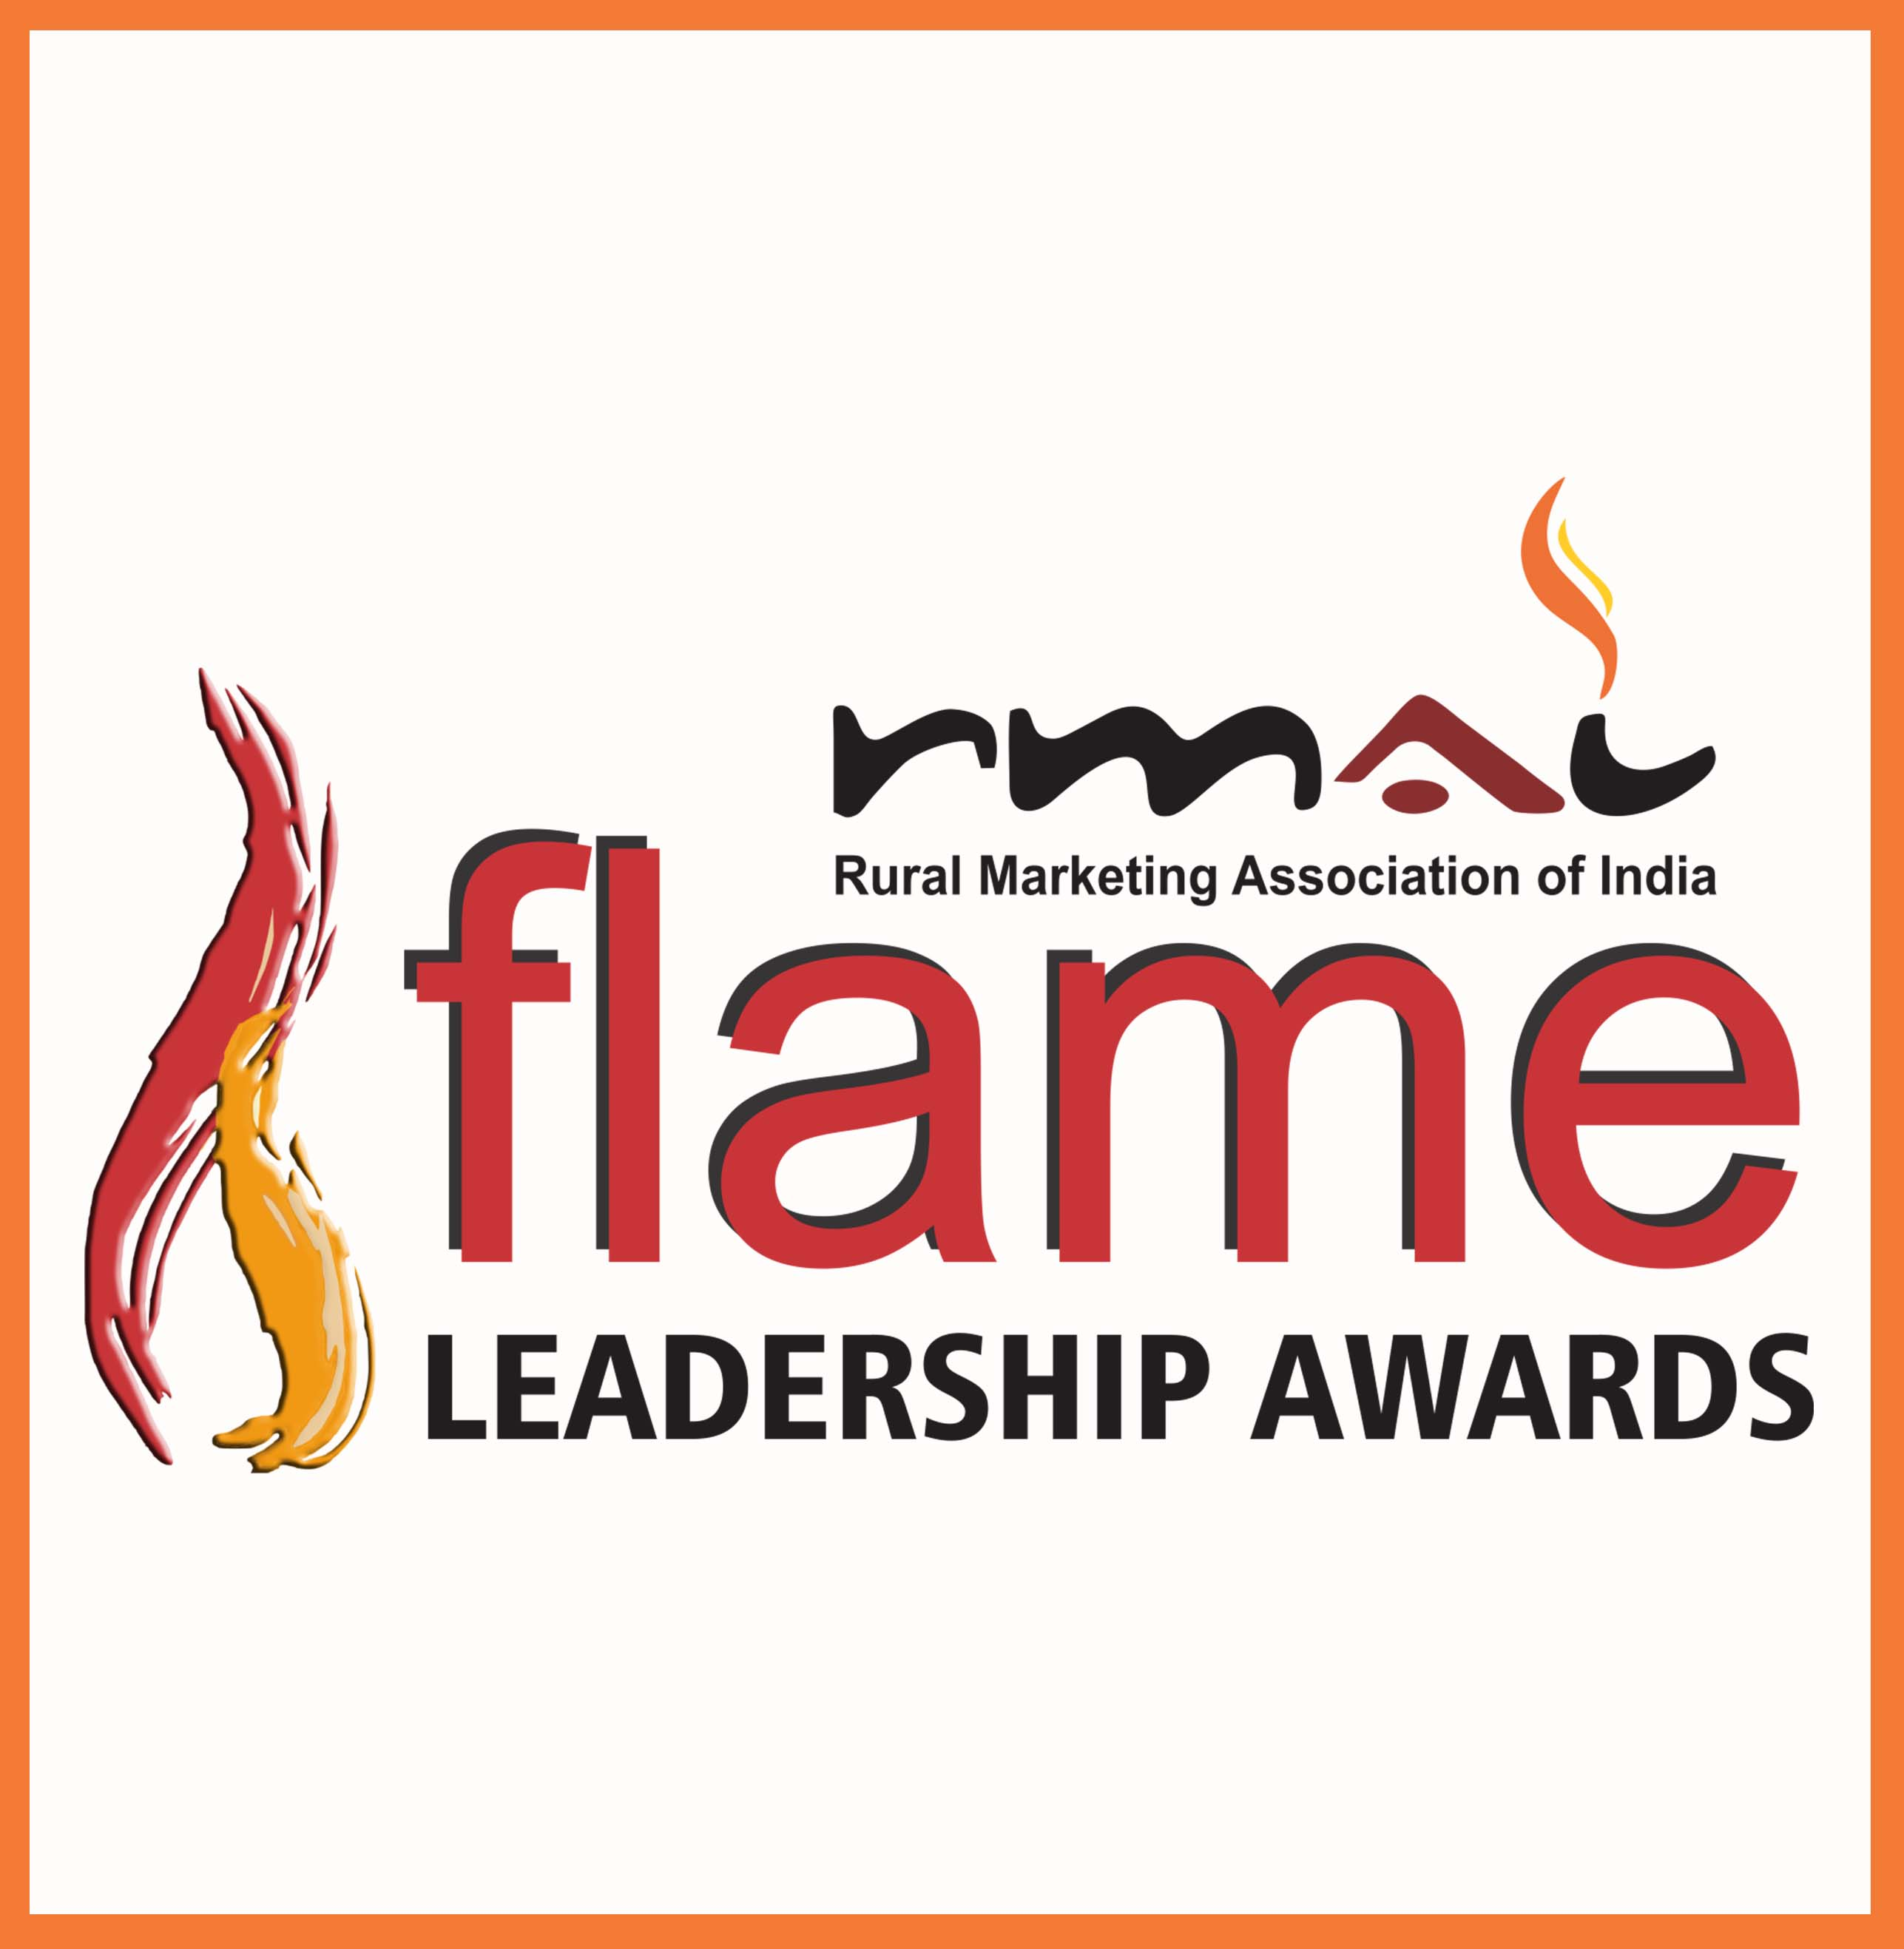 Flame Leadership Awards 2019